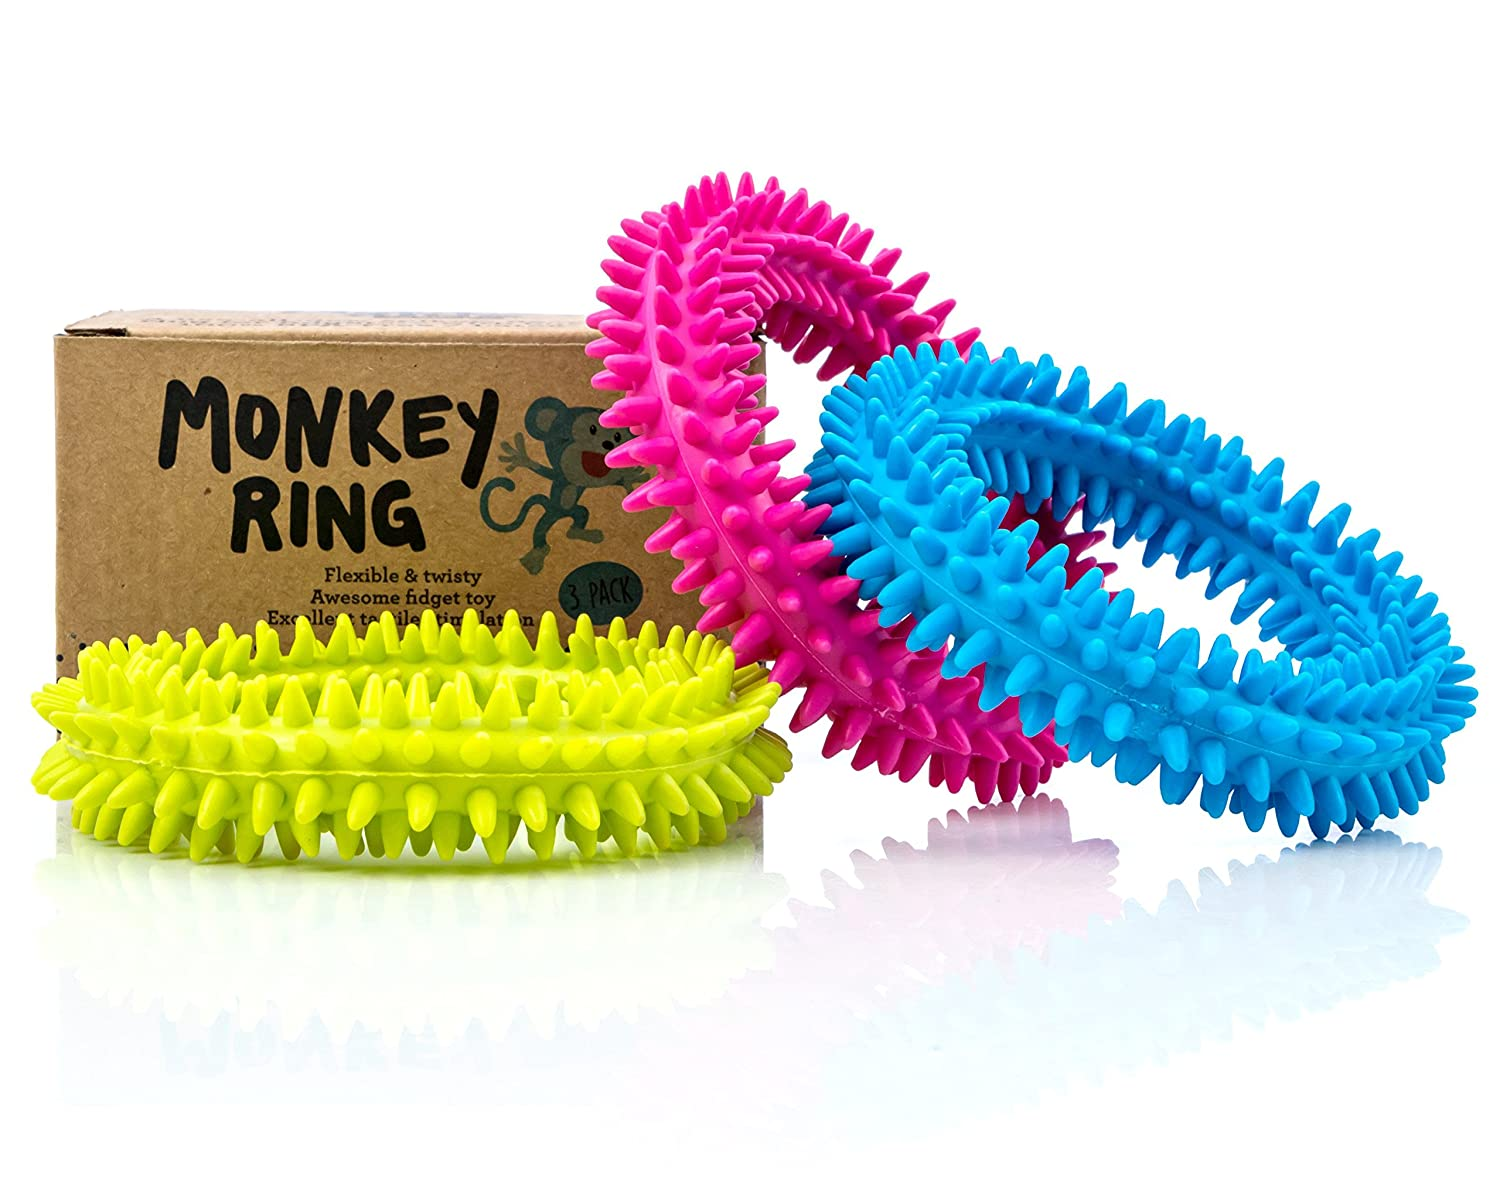 ab6c50bb6d8104 Amazon.com : Spiky Sensory Ring/Bracelet Fidget Toy (Pack of 3) -  BPA/Phthalate/Latex-Free - Fidgets Toys/Stress Rings for Children and  Adults - by Impresa ...